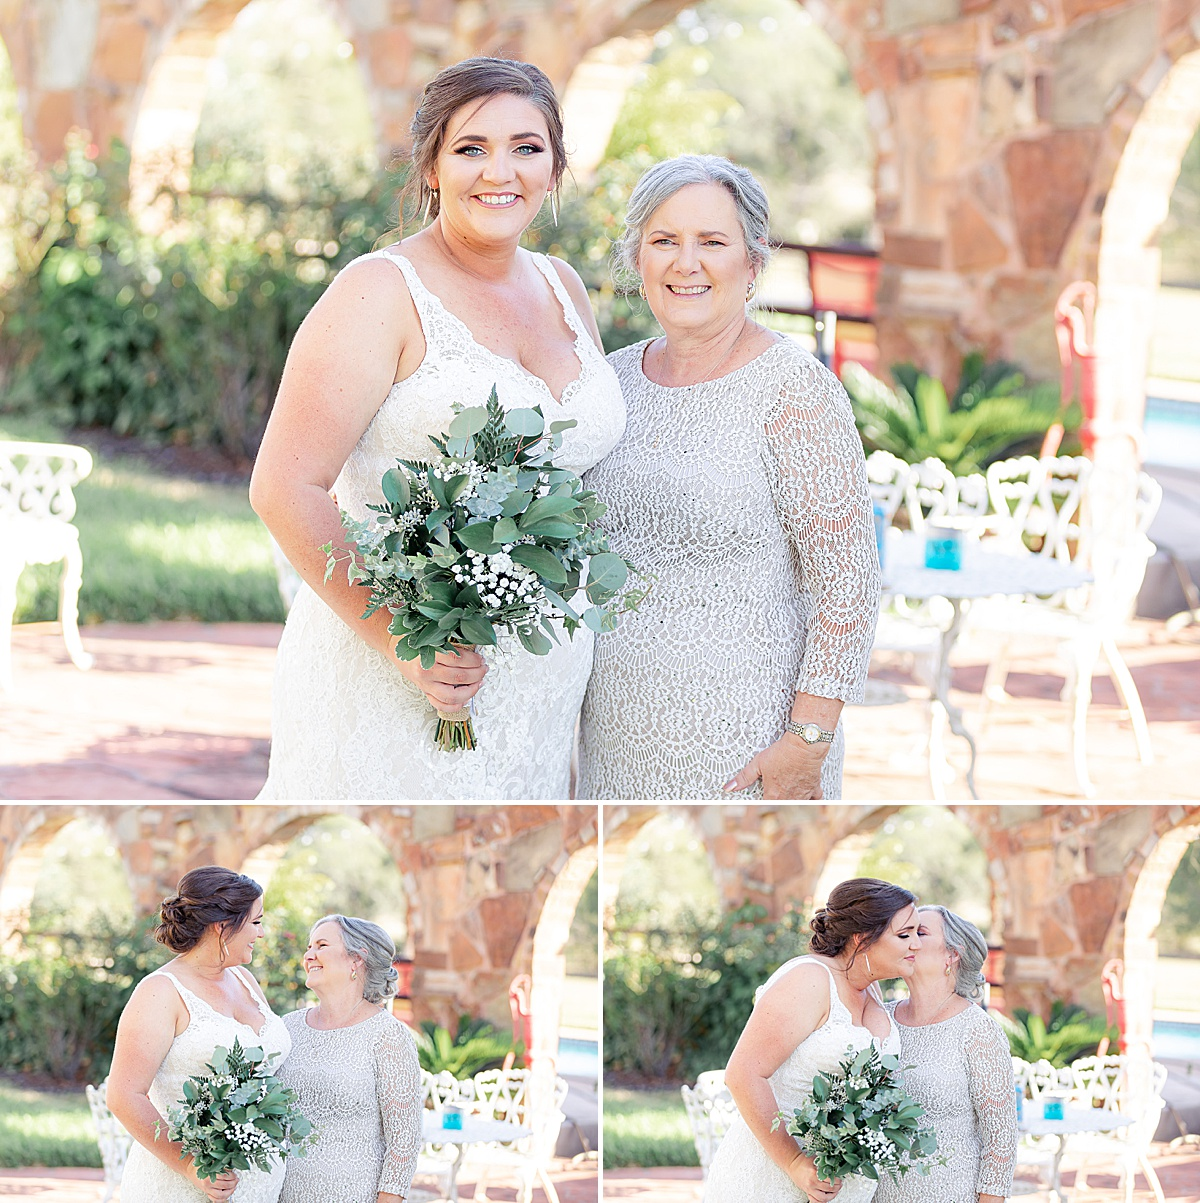 Rustic-Texas-Wedding-Hollow-Creek-Ranch-Carly-Barton-Photography_0146.jpg